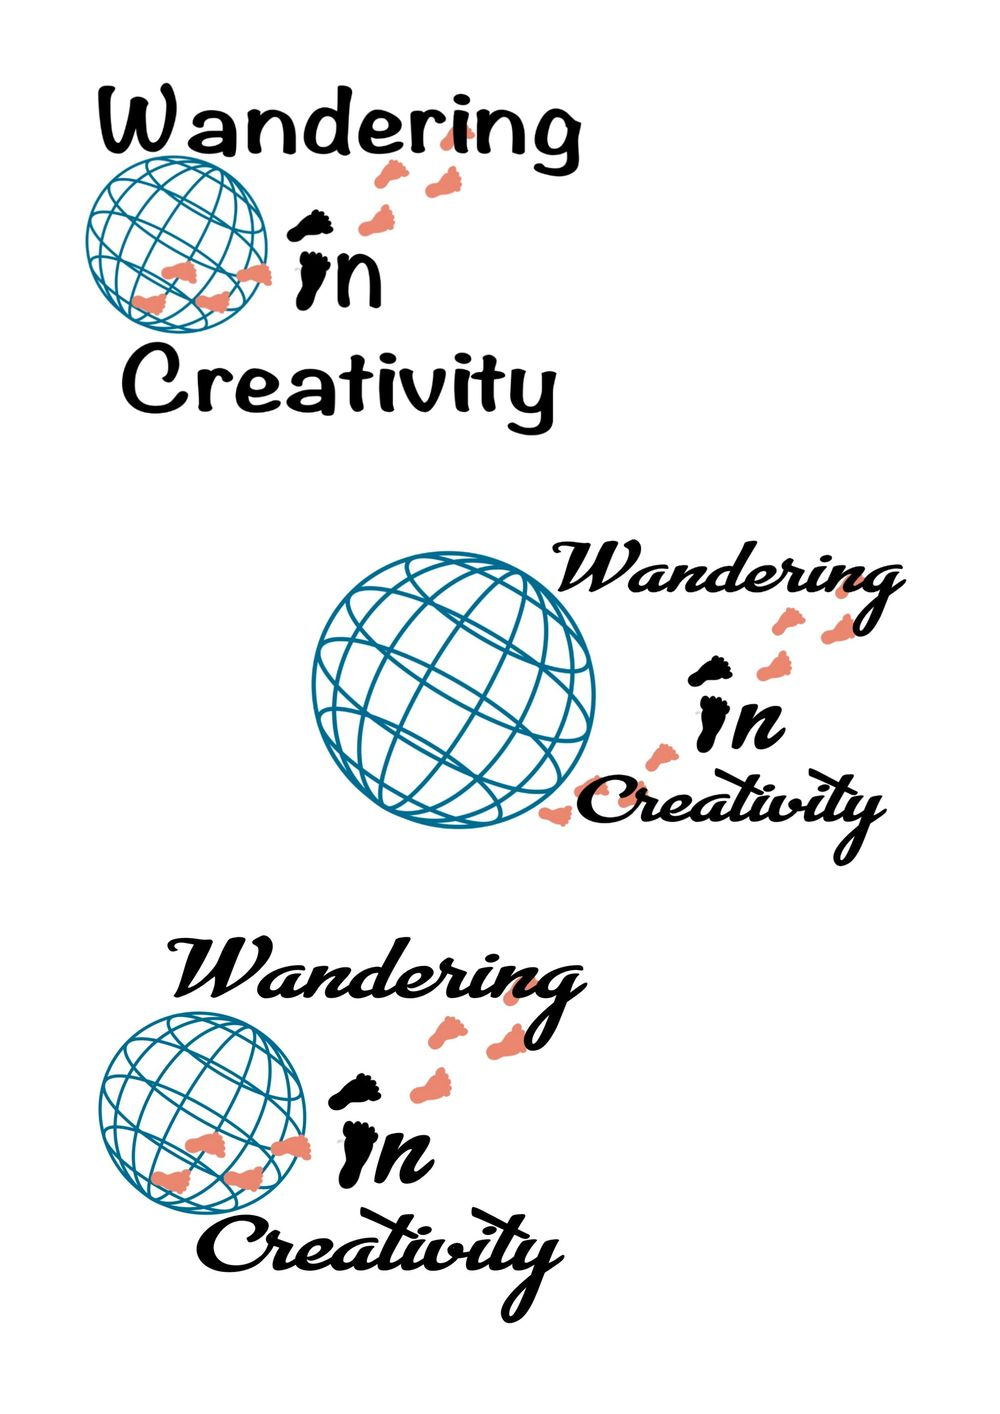 Wandering in Creativity (W.I.C.) - image 7 - student project